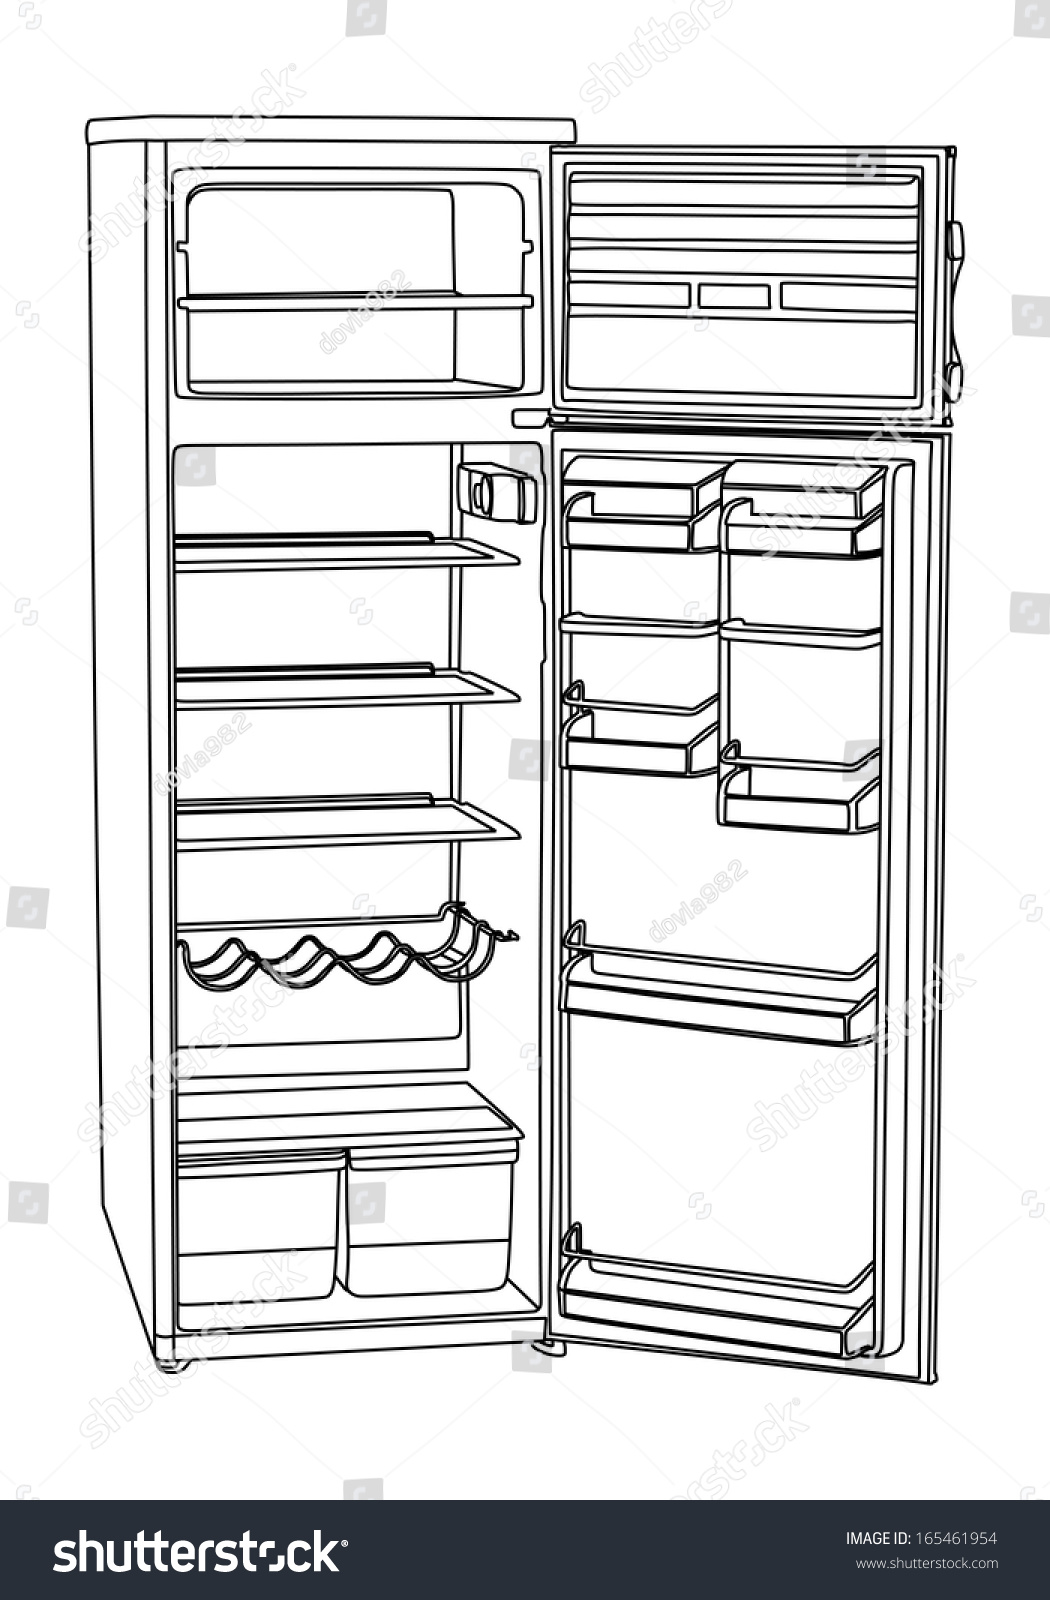 refrigerator coloring page - royalty free open drink refrigerator vector isolated